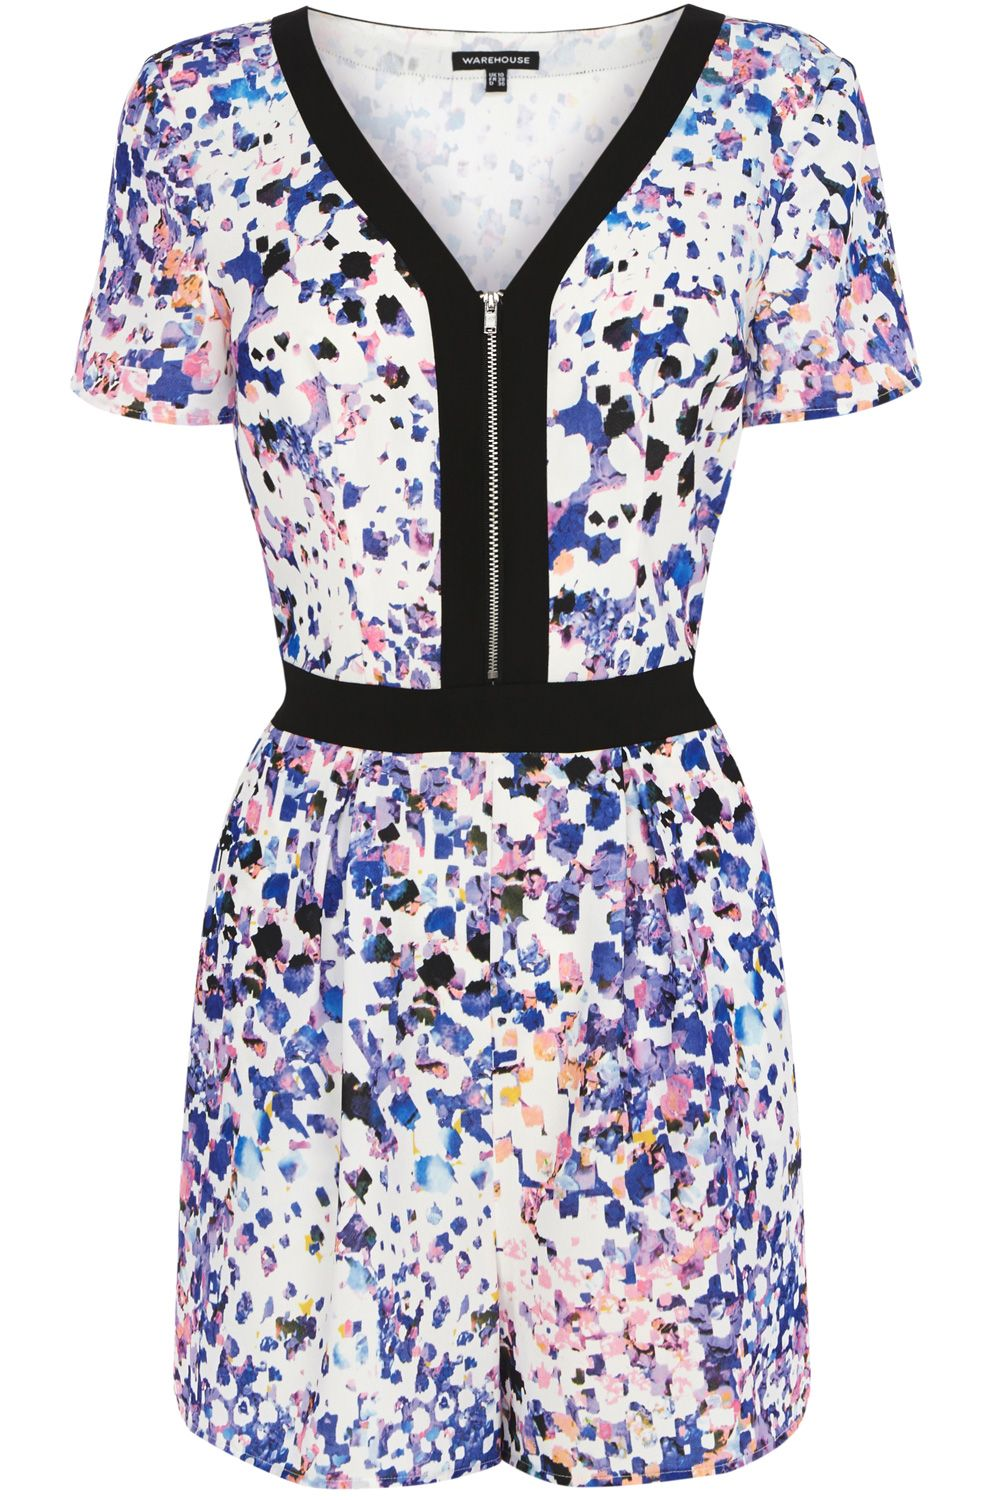 Dapple print playsuit